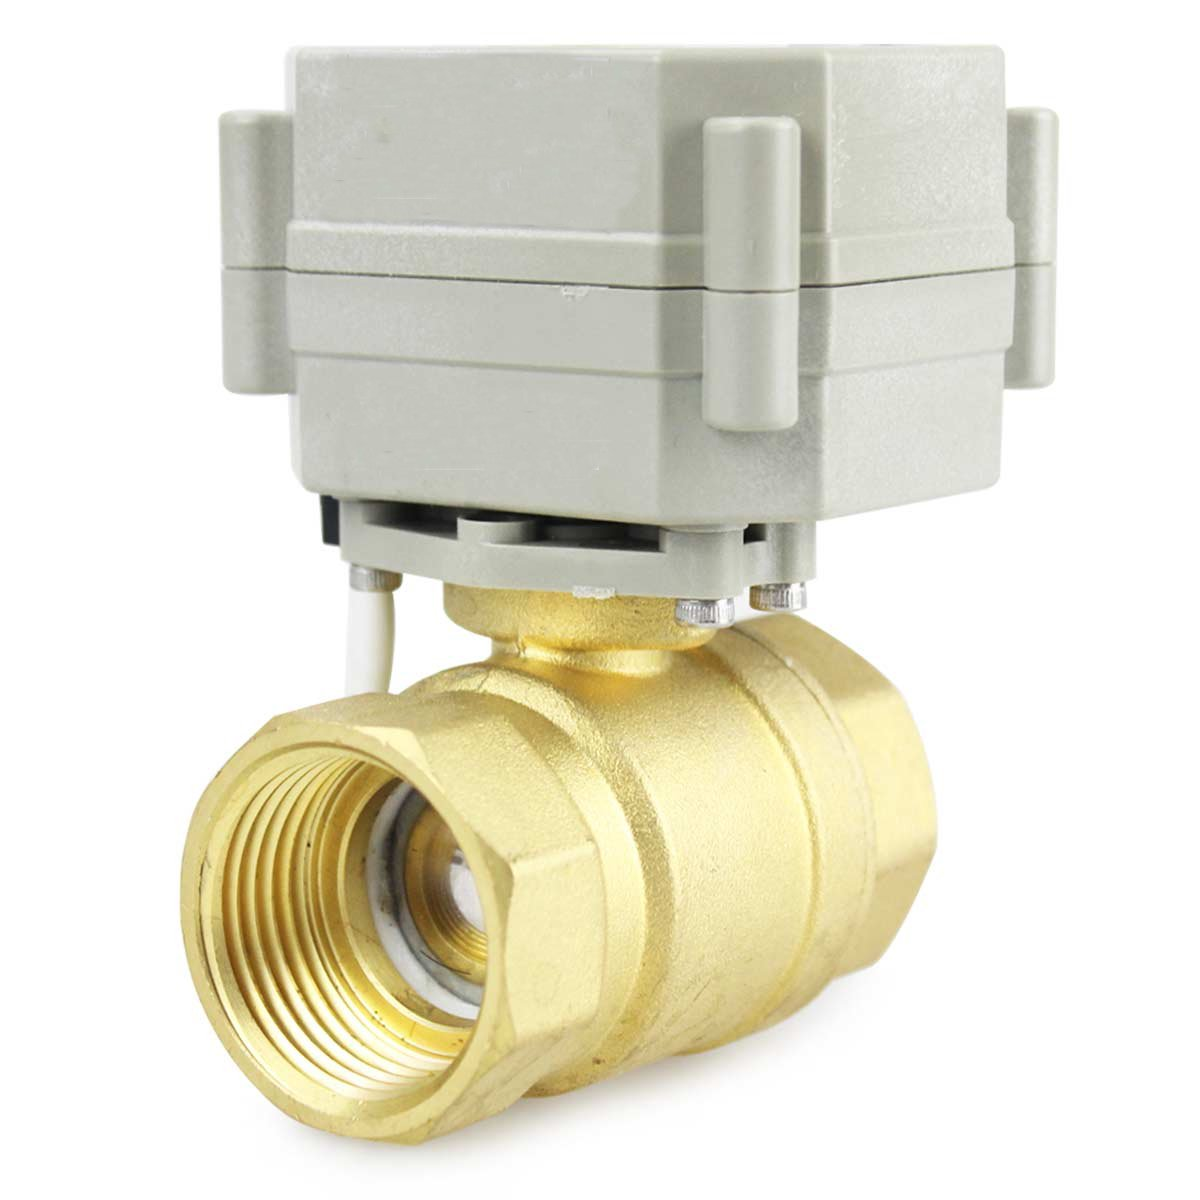 HSH-Flo 2 Way 1/2'' 3/4'' 1'' 1-1/4'' 110-230VAC Brass On/Off Auto Return Electrical Position Feedback Motorized Ball Valve (1-1/4 Inch)